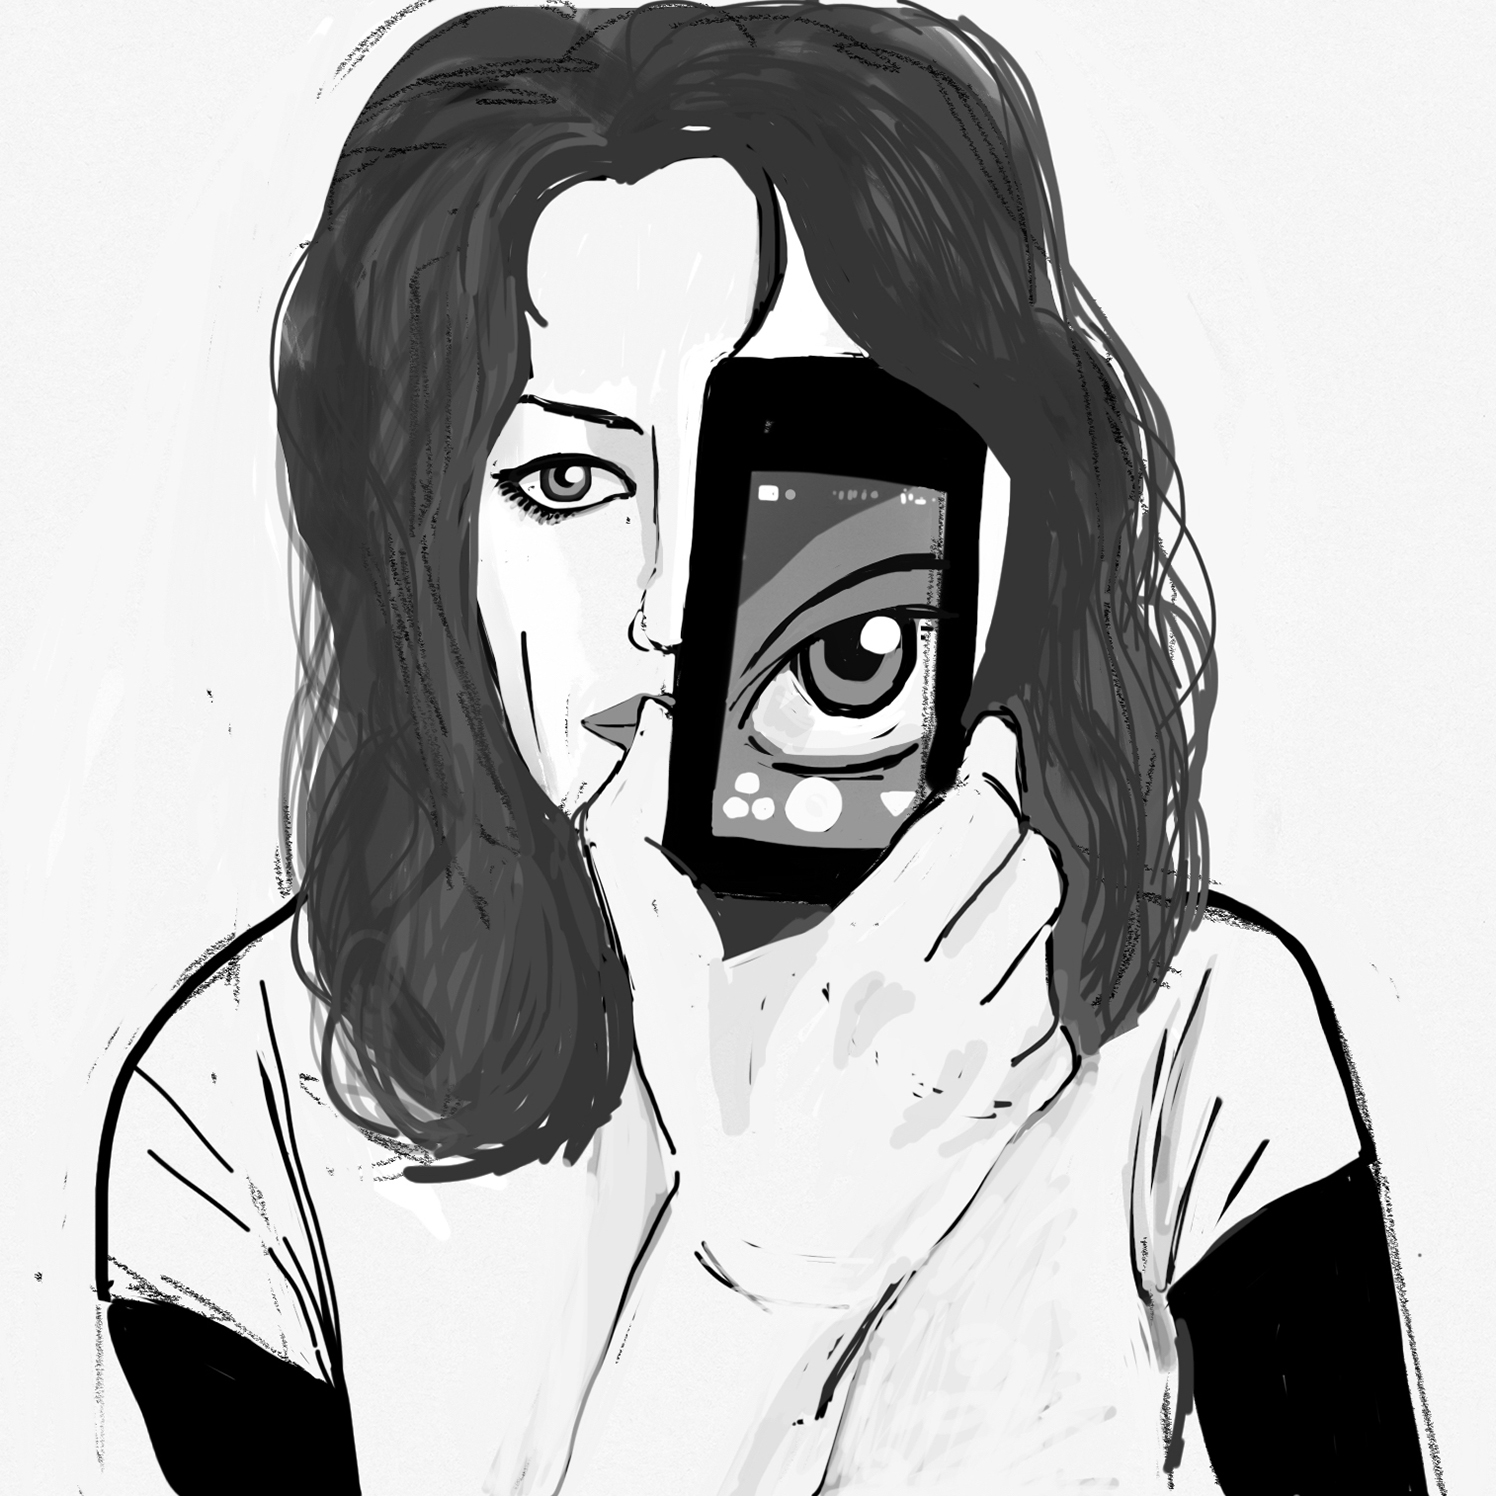 Selfie Drawing 01, 2015 courtesy of the artist